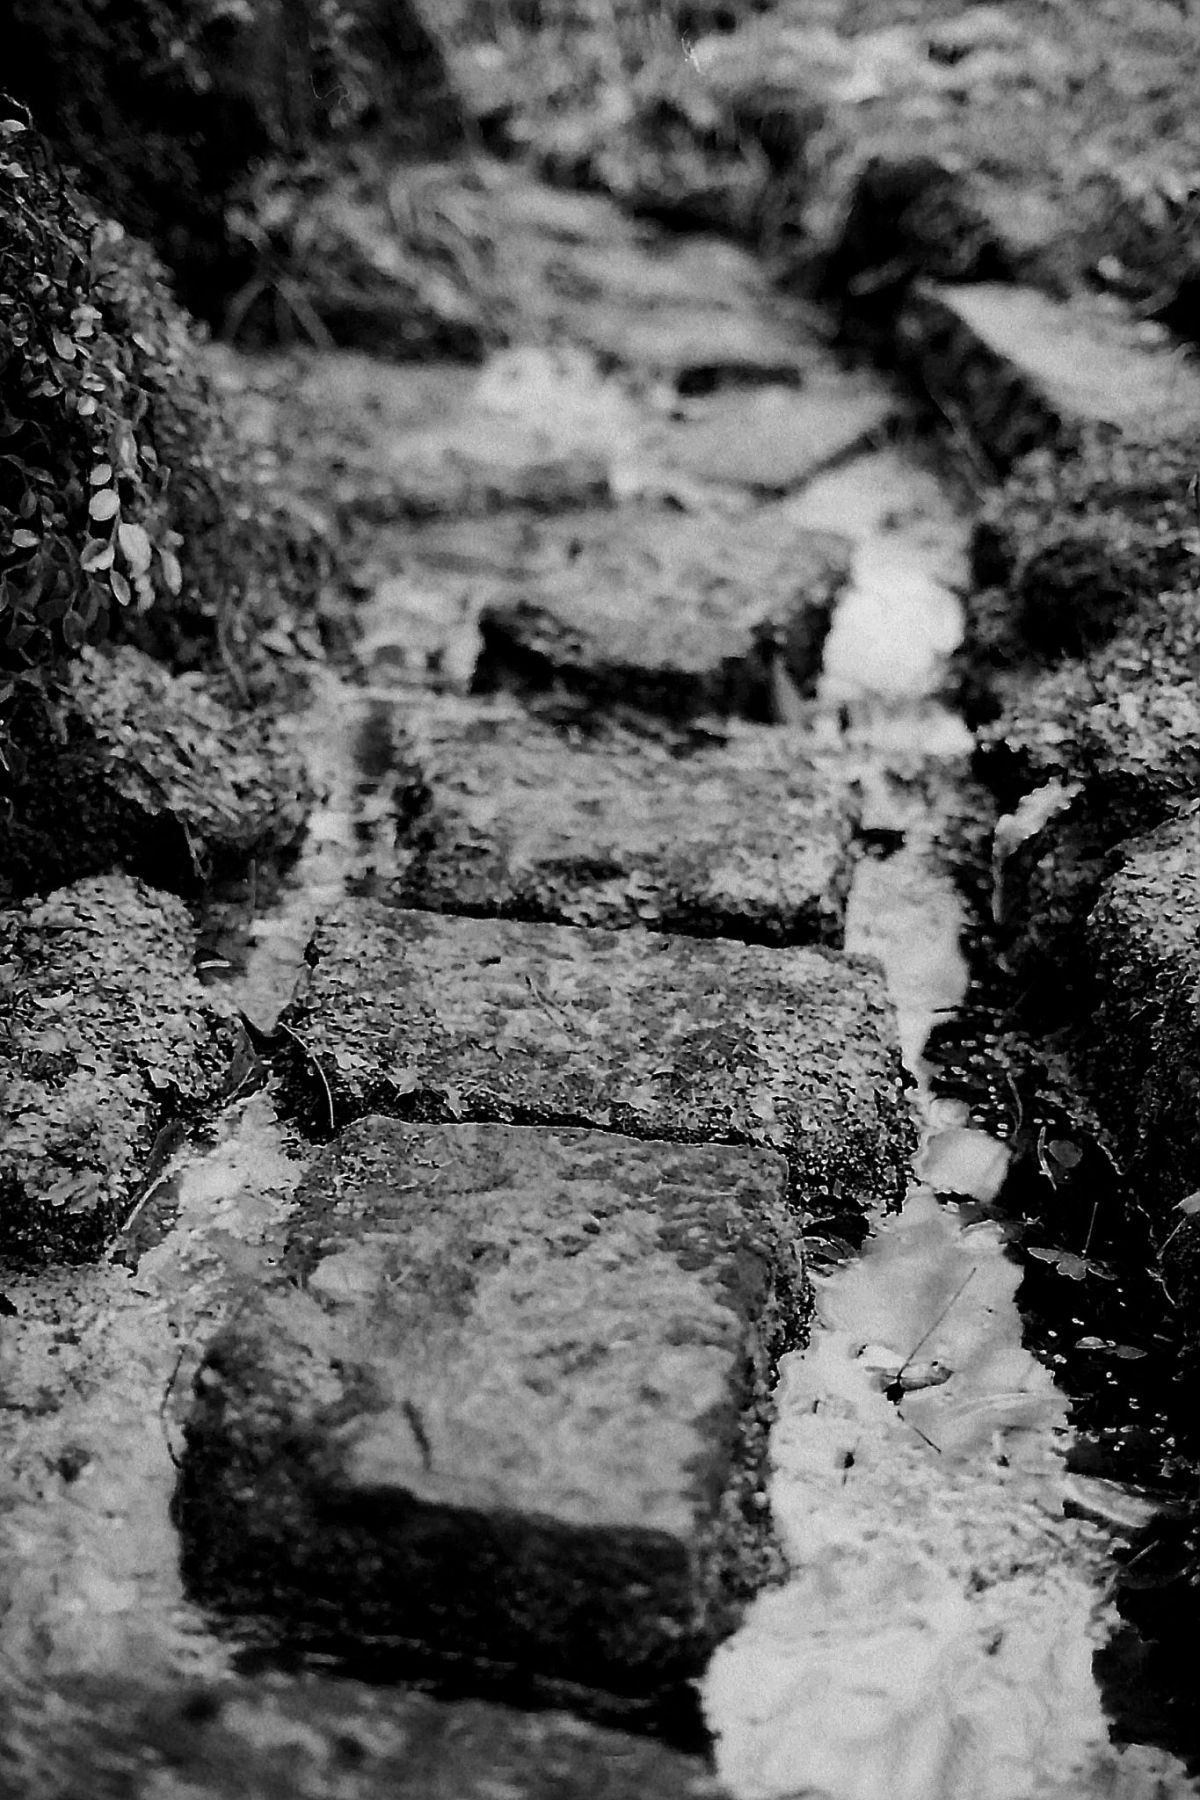 Stepping stones in the Sandstone Rock Garden, photograph by Chris Rigby, film photography, Winterbourne House and Garden, Digging for Dirt